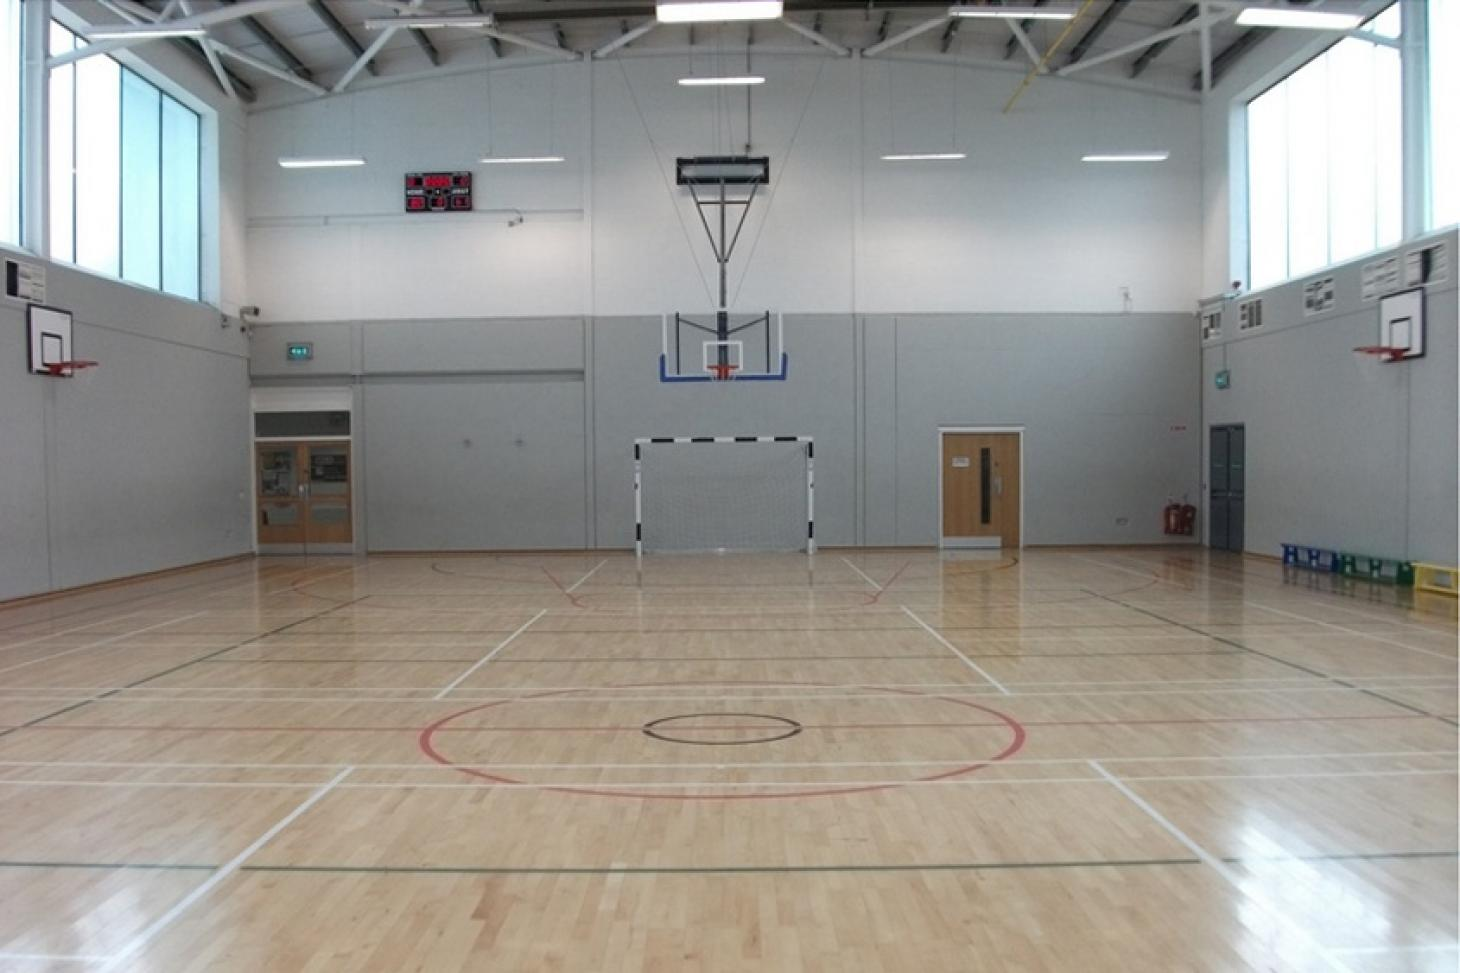 Mountview Youth & Community Centre Indoor basketball court